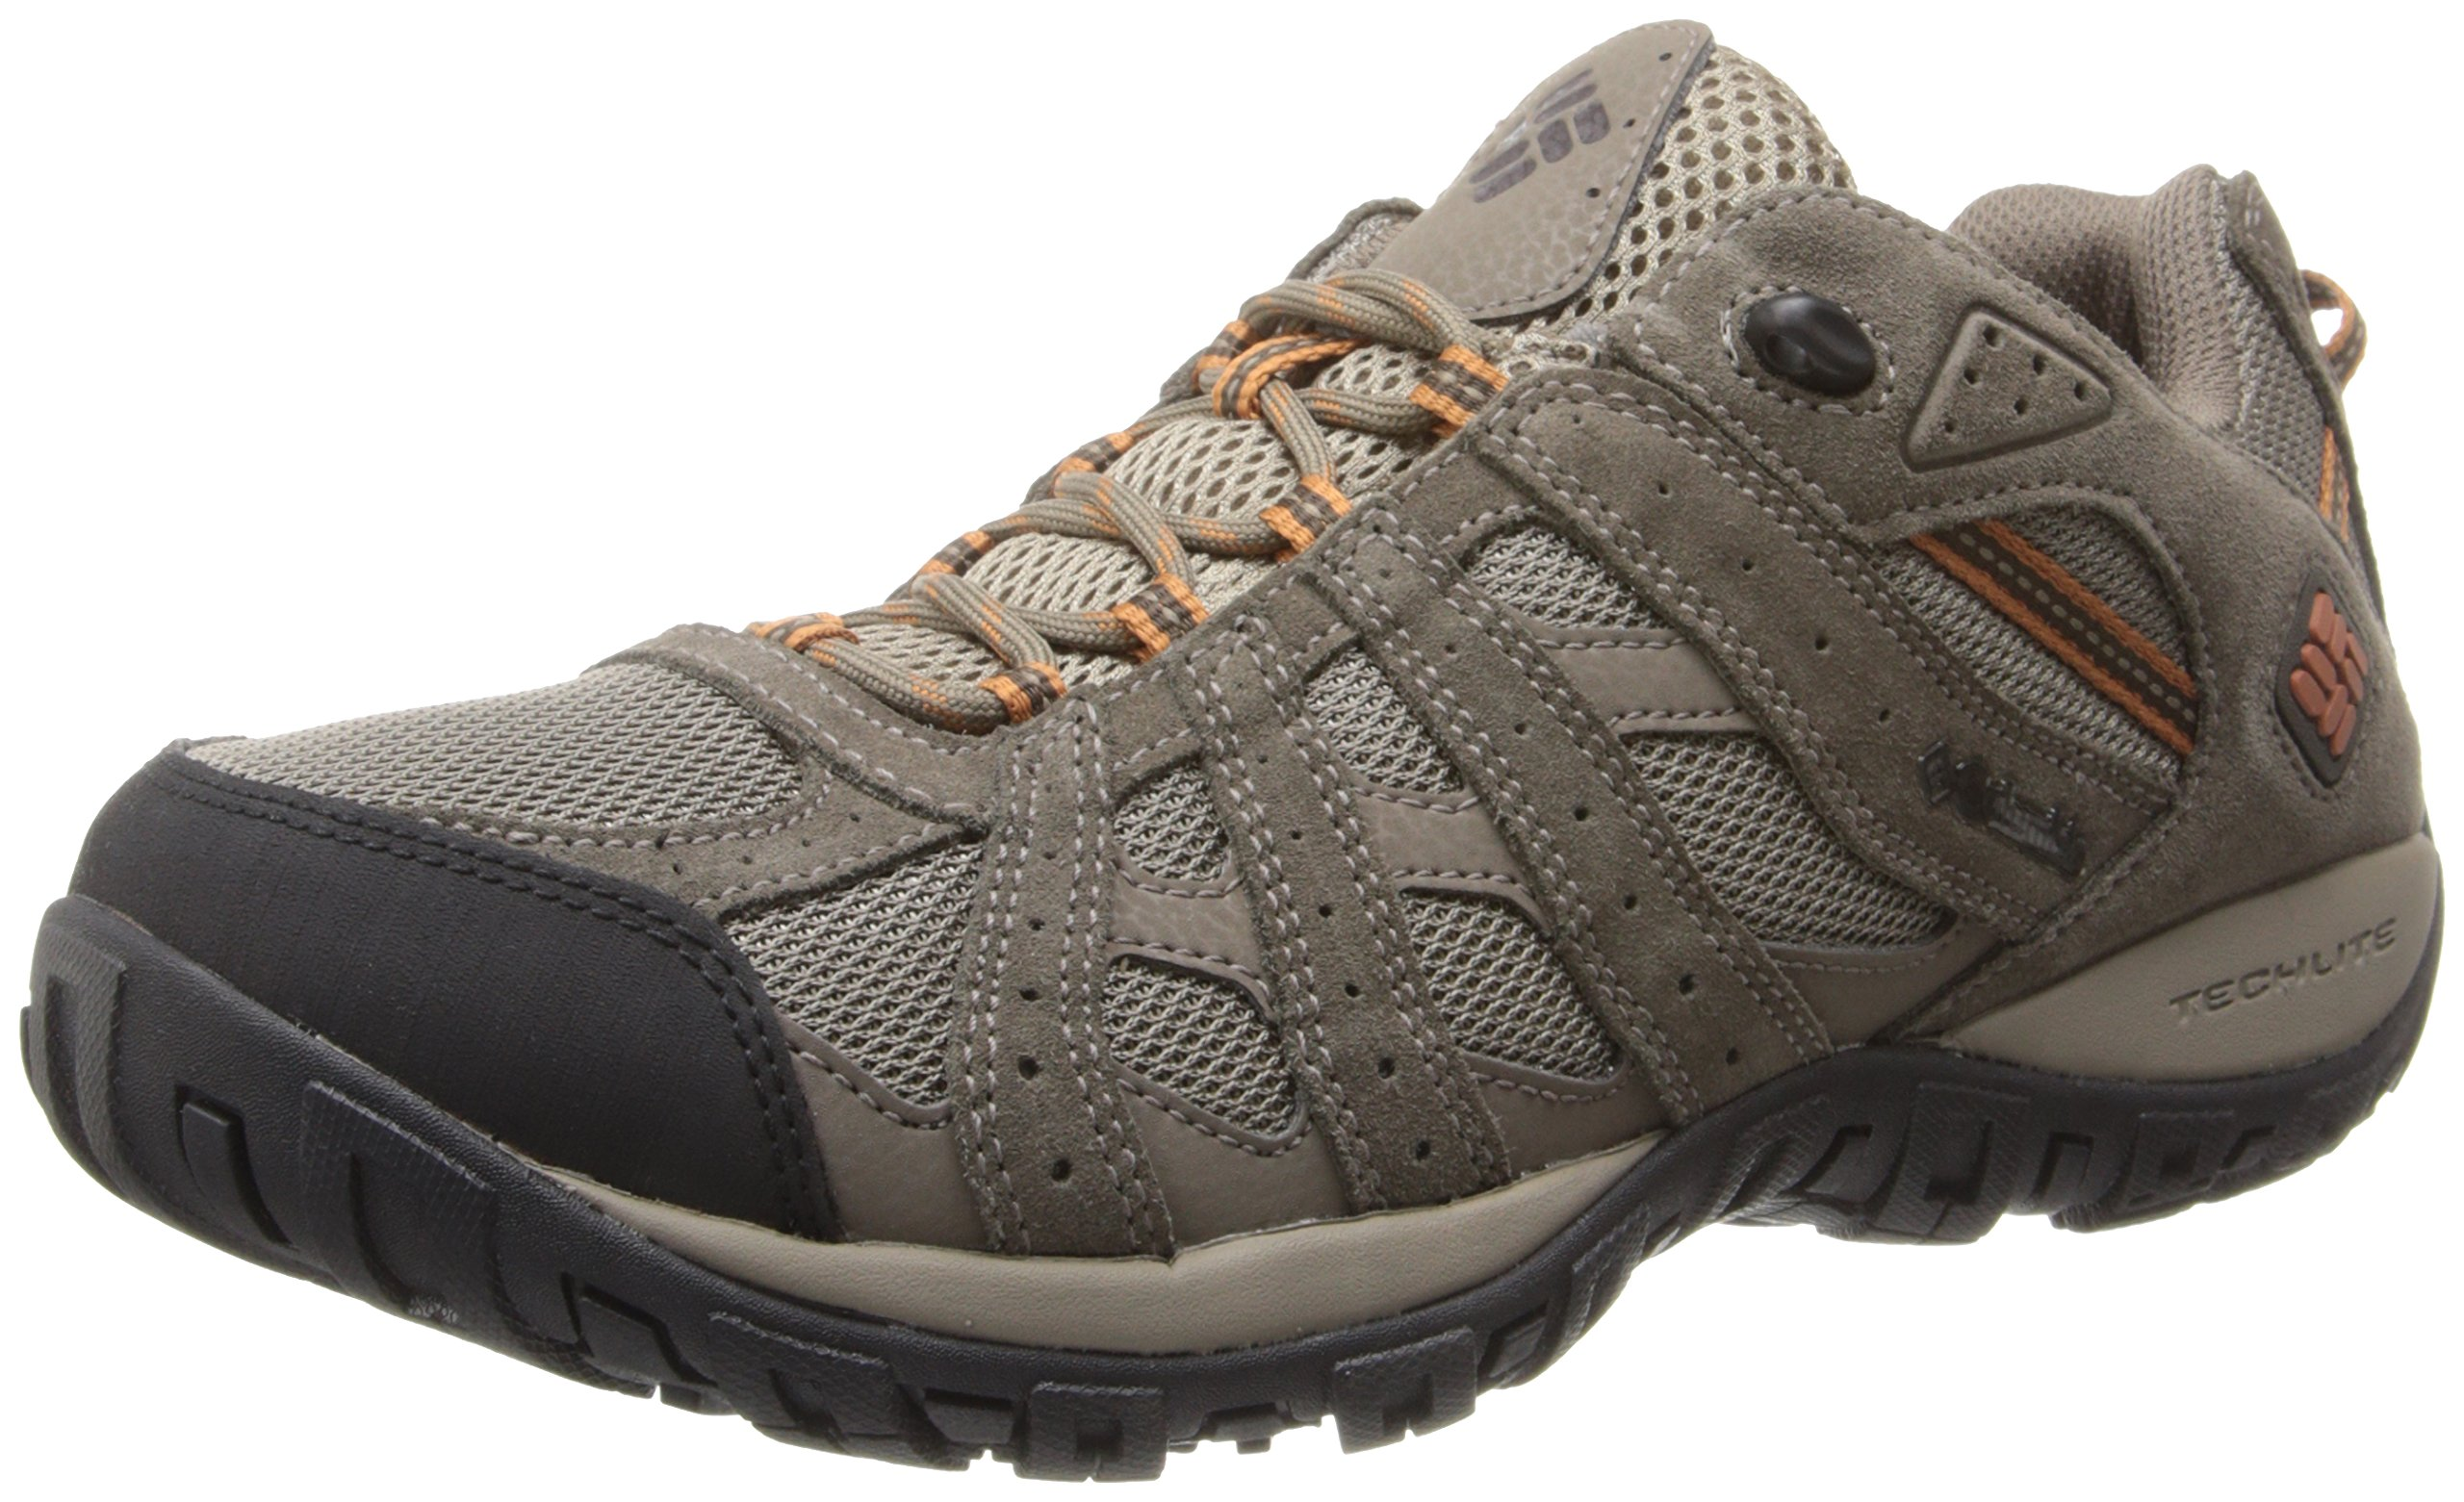 Columbia Men's Redmond Waterproof Hiking Shoe, Pebble, Dark Ginger, 11 D US by Columbia